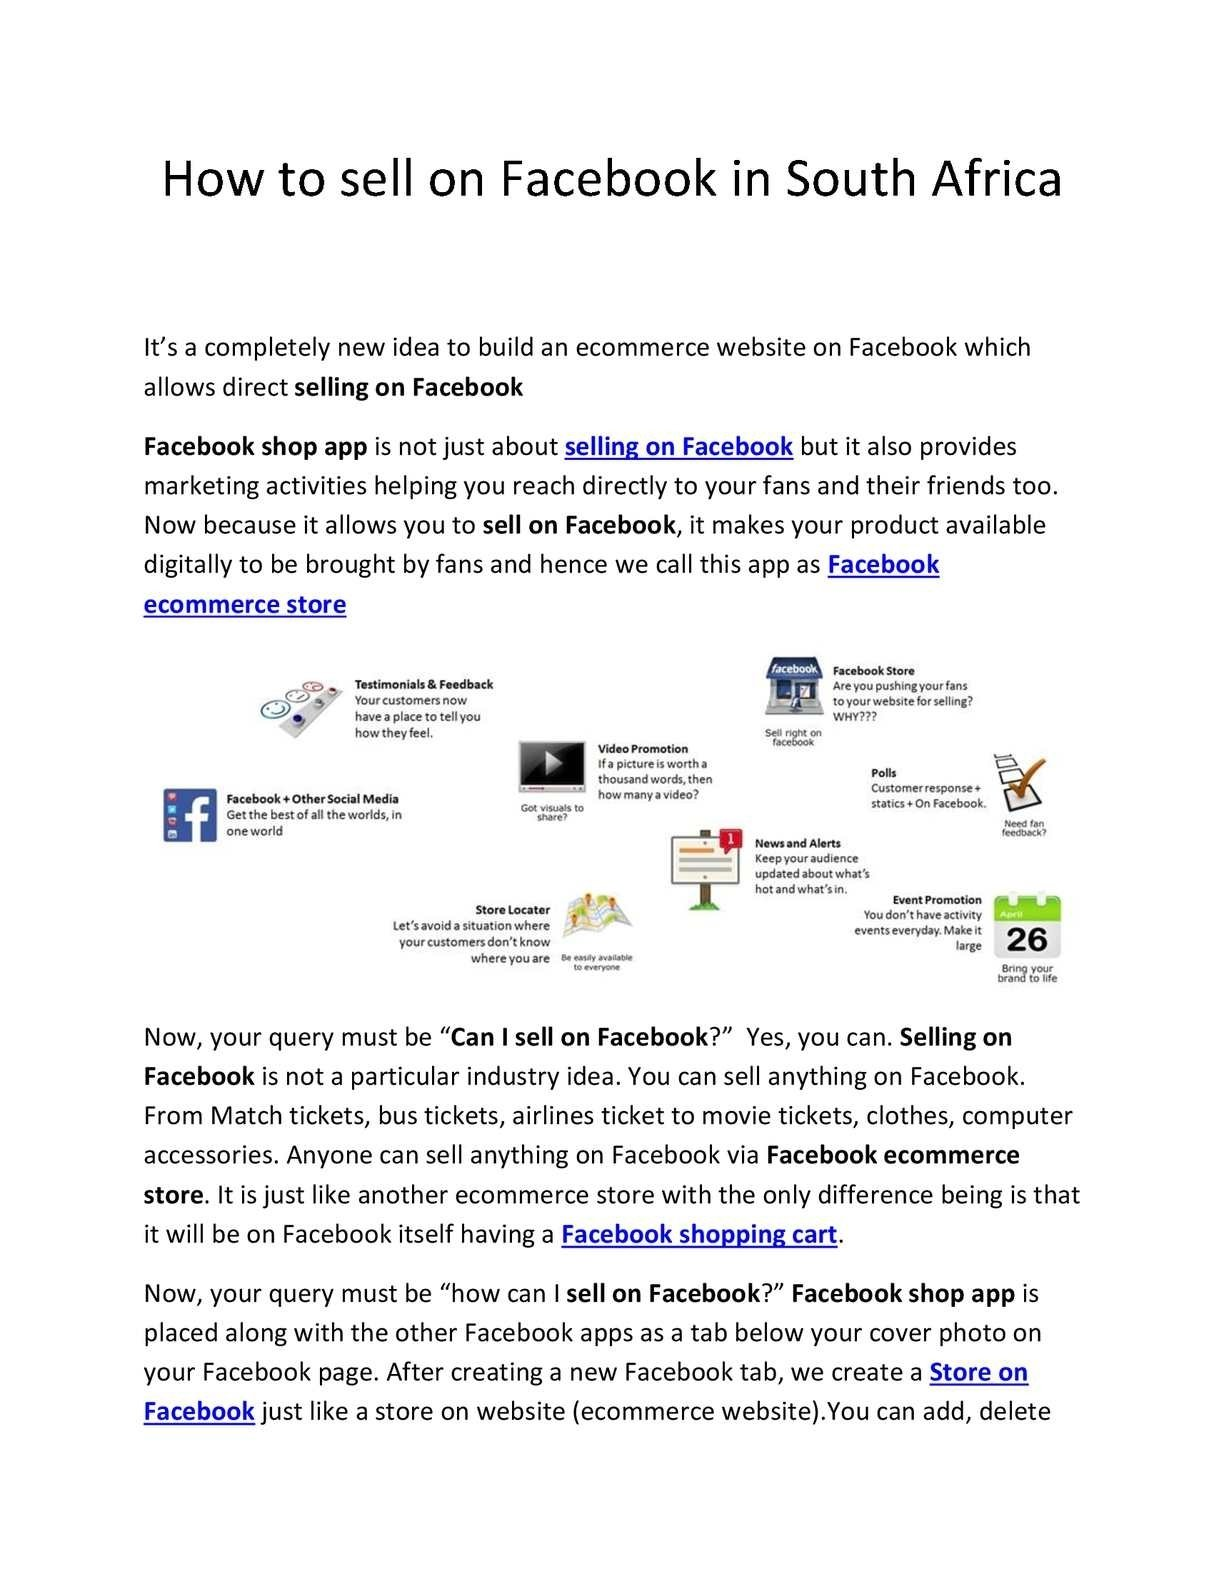 10 Gorgeous How To Sell An App Idea calameo how to sell on facebook in south africa 2020